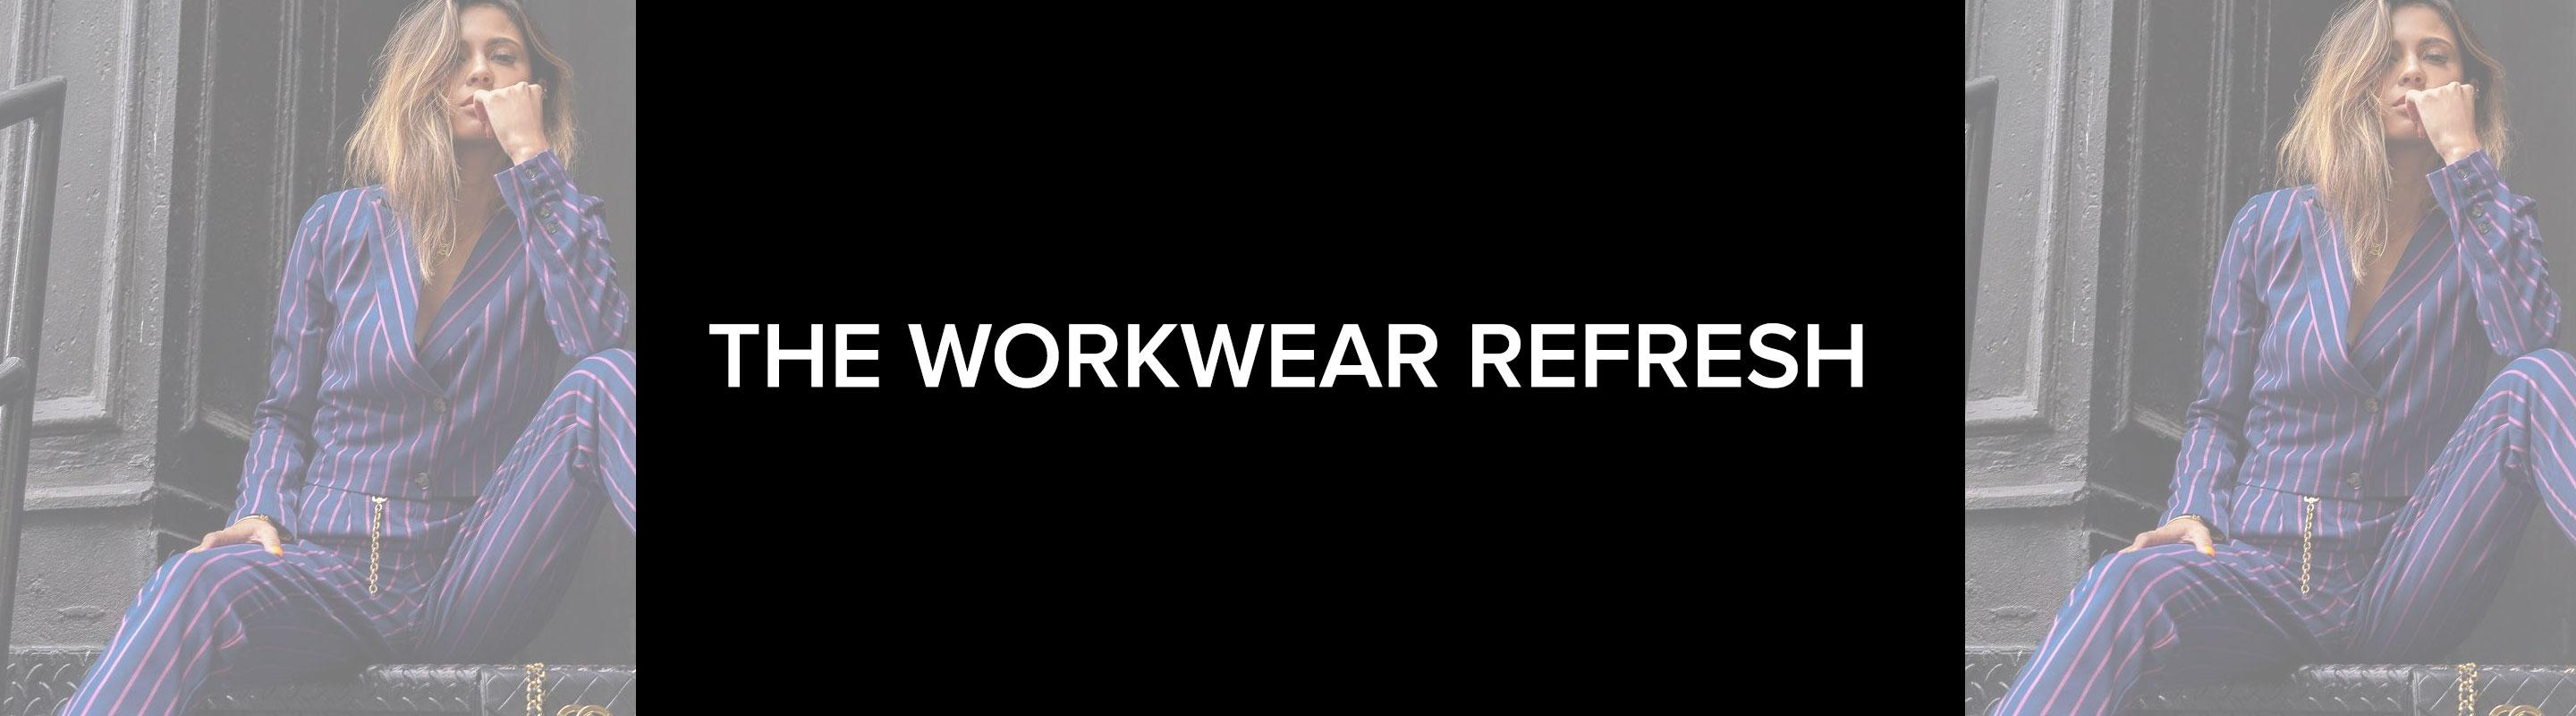 The Workwear Refresh